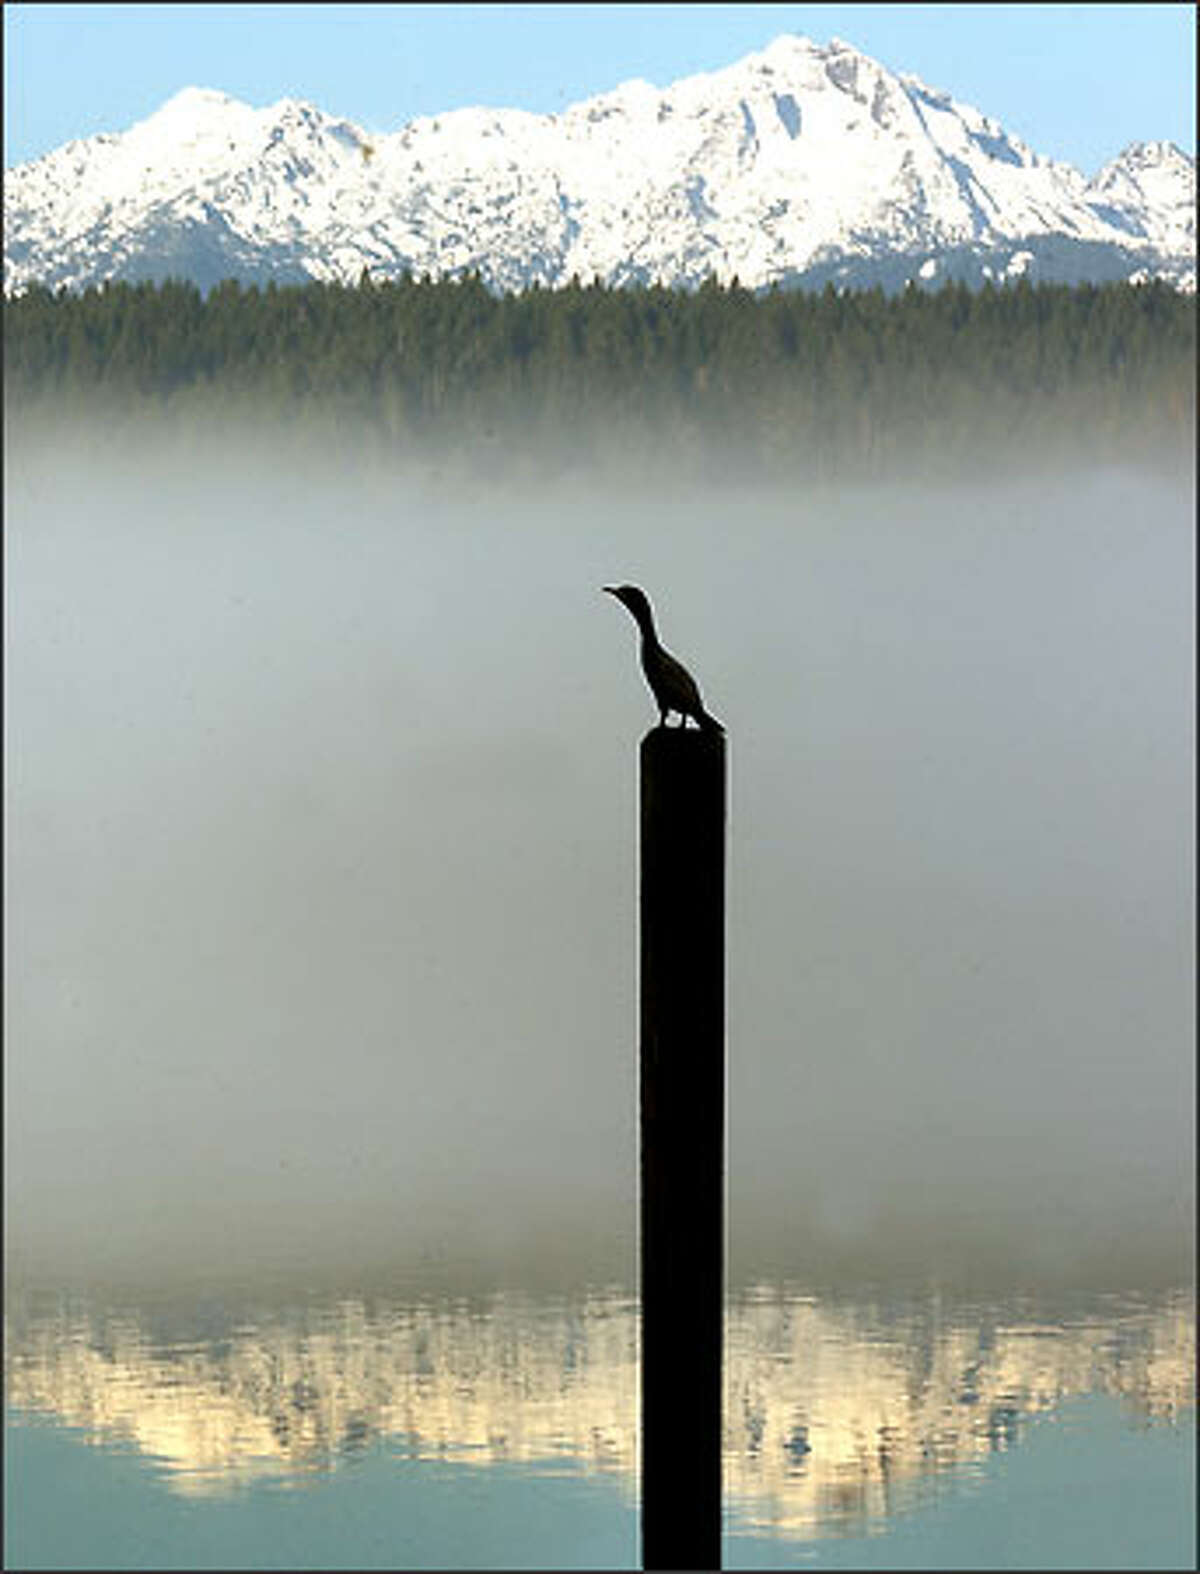 Seemingly oblivious to pollution threats in Hood Canal, a cormorant rests on a piling in the south canal area with the Olympics as backdrop.